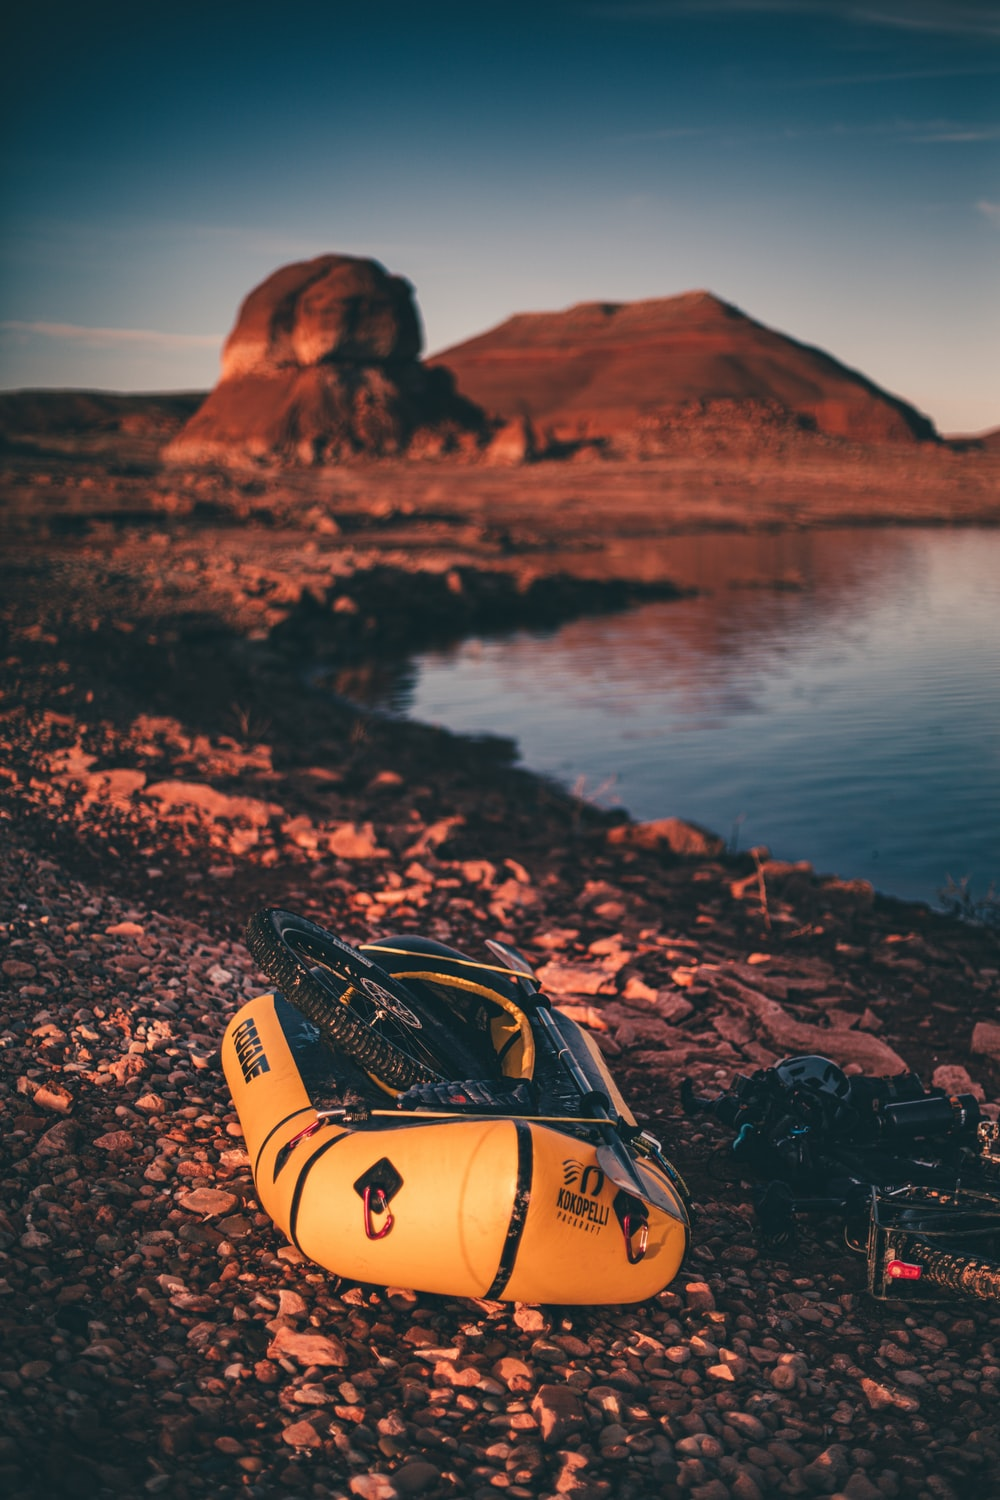 black and yellow inflatable raft near body of water